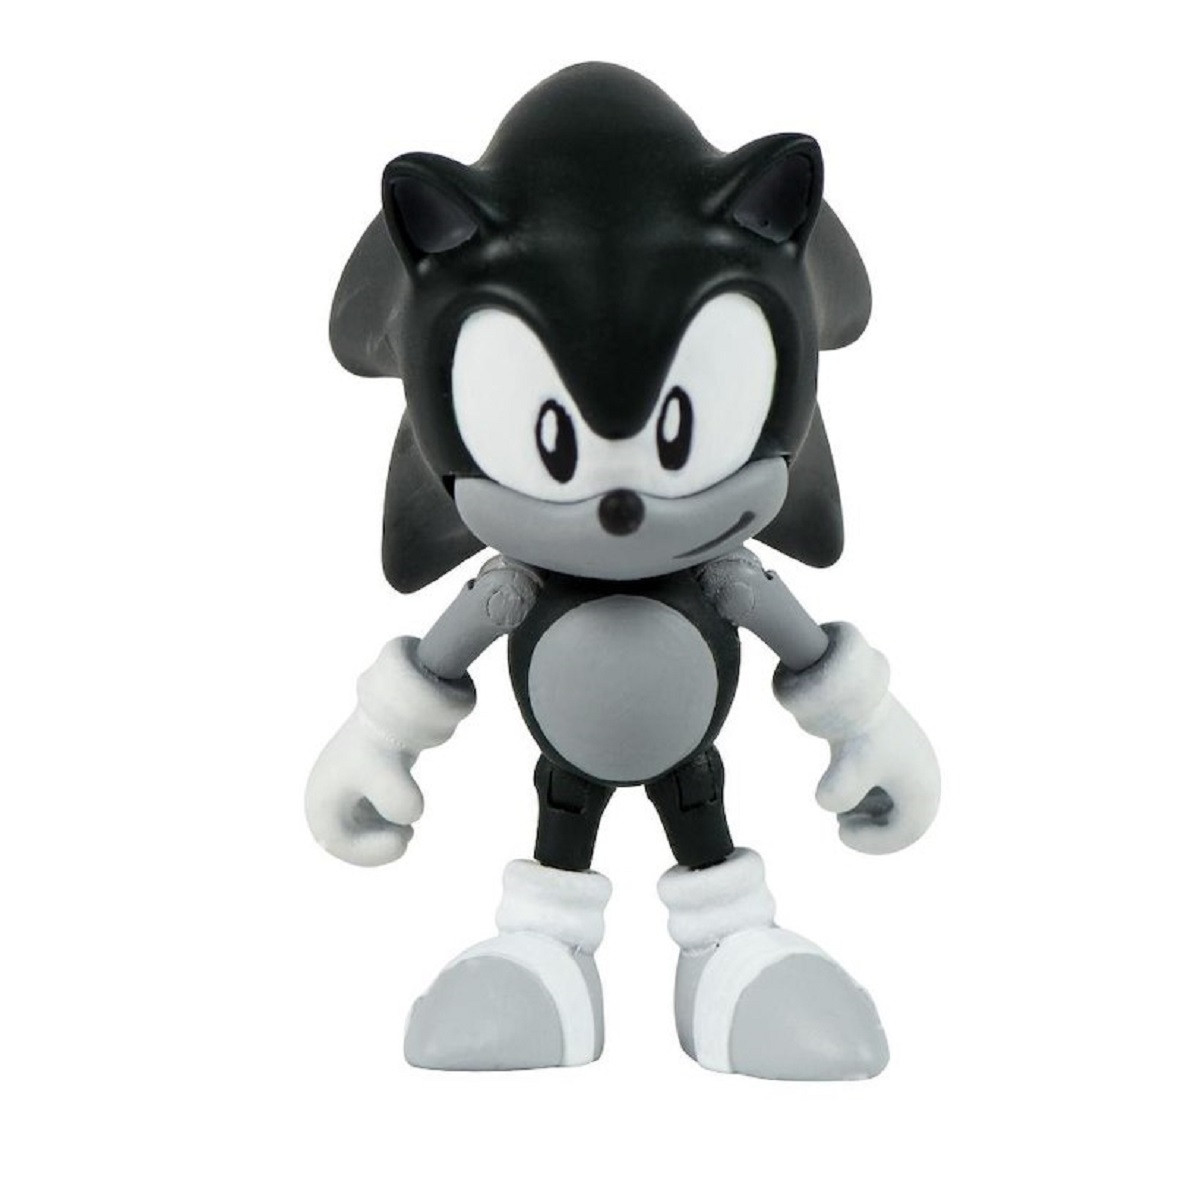 Action Figure Toy - Sonic Boom - Collector Series - Classic Sonic - Black and White